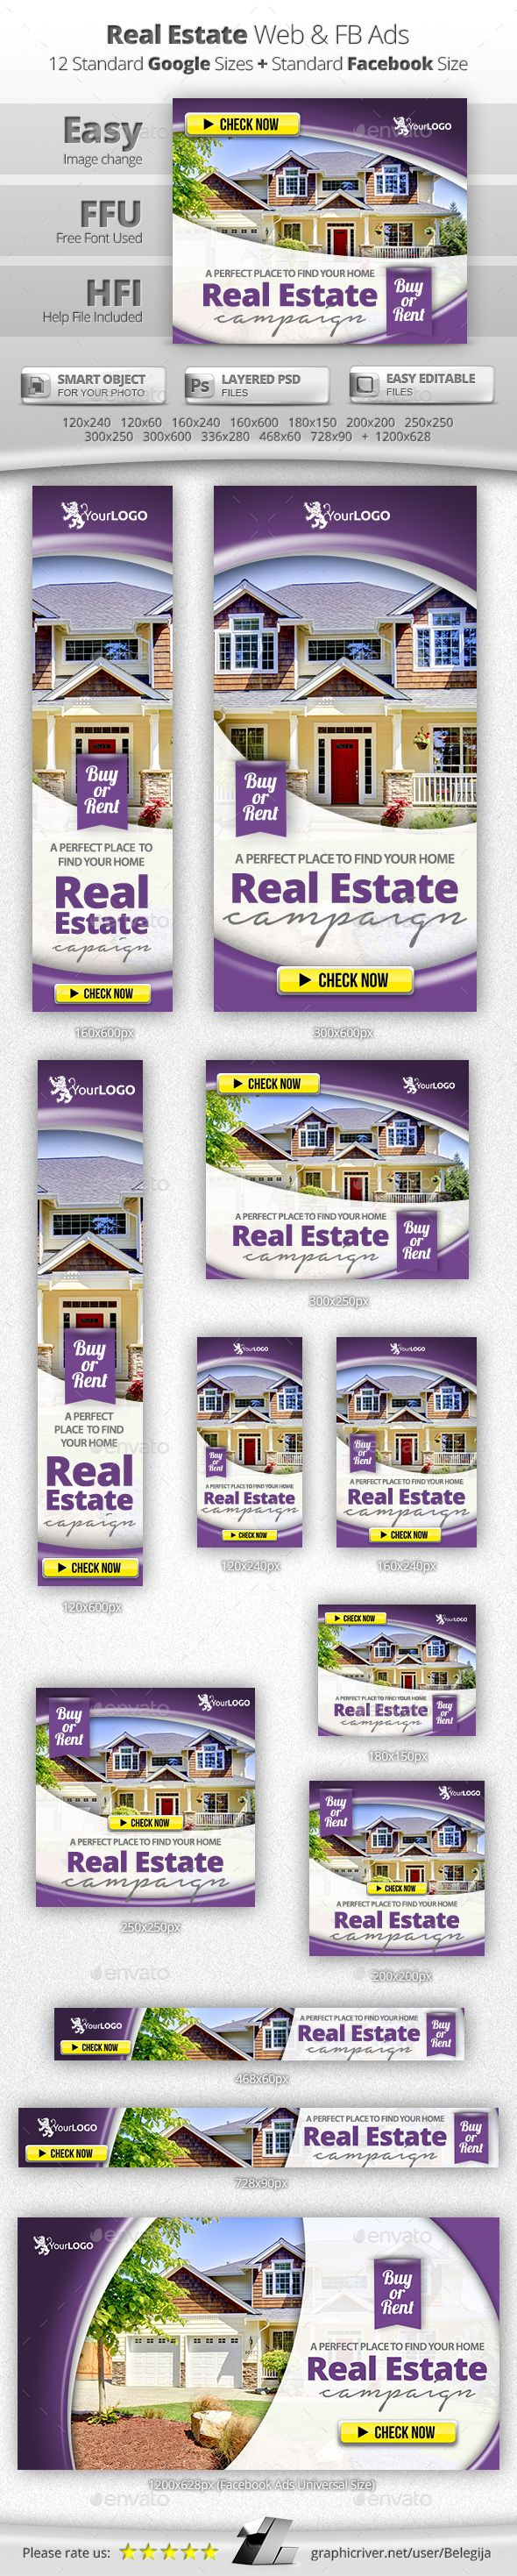 Real Estate Web & Facebook Banners Template PSD #ads #design Download: http://graphicriver.net/item/real-estate-web-facebook-banners/13305447?ref=ksioks